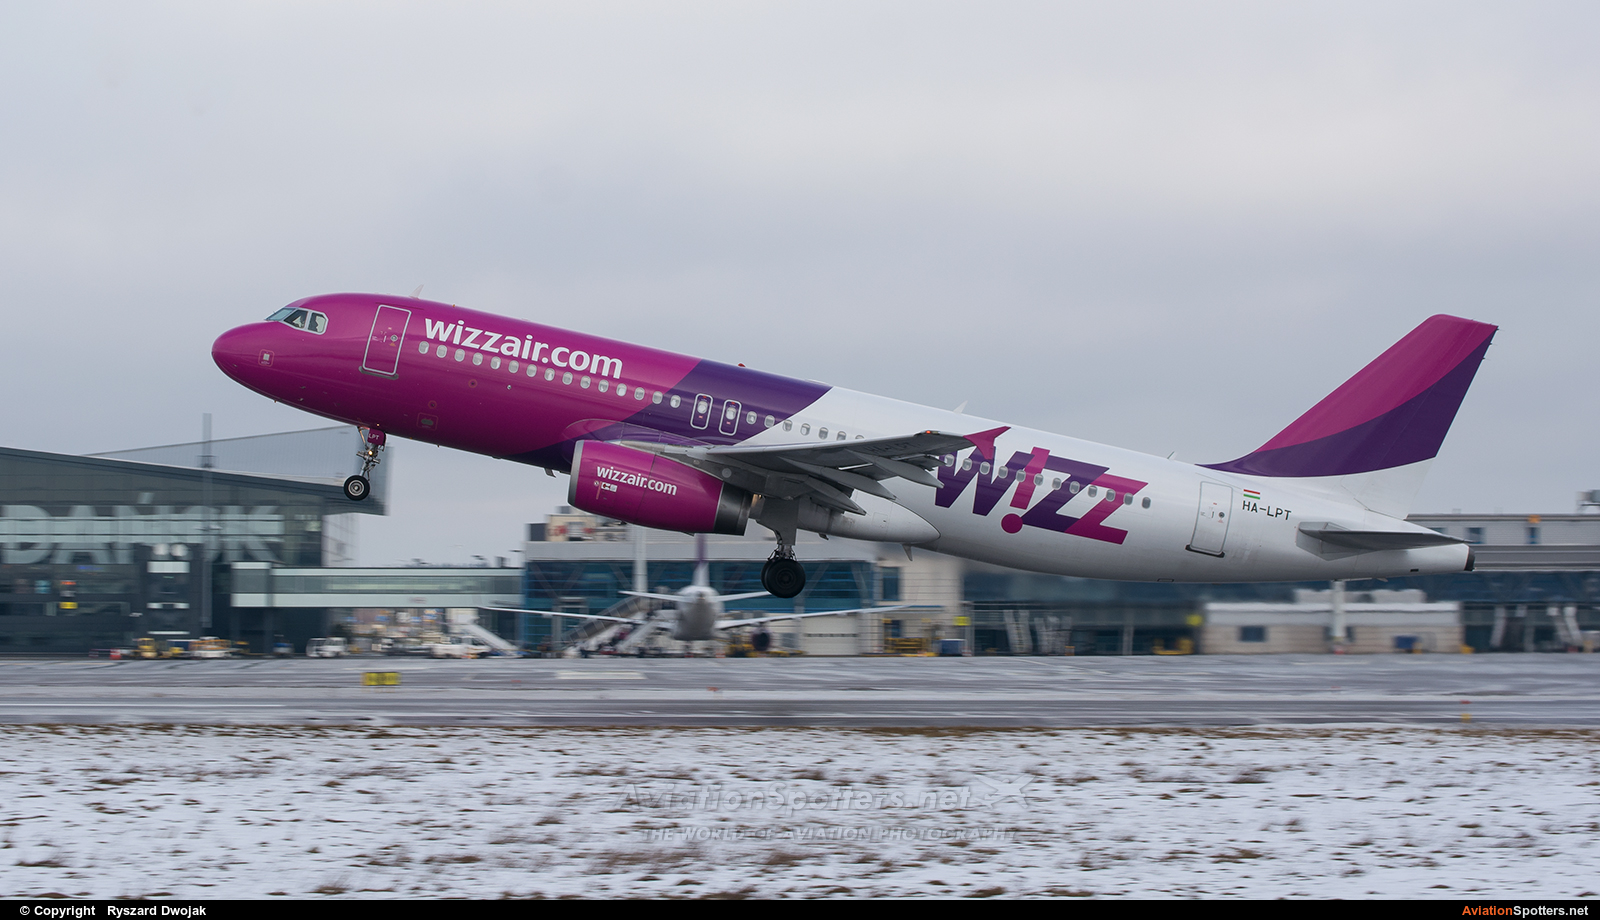 Wizz Air  -  A320  (HA-LPT) By Ryszard Dwojak (ryś)